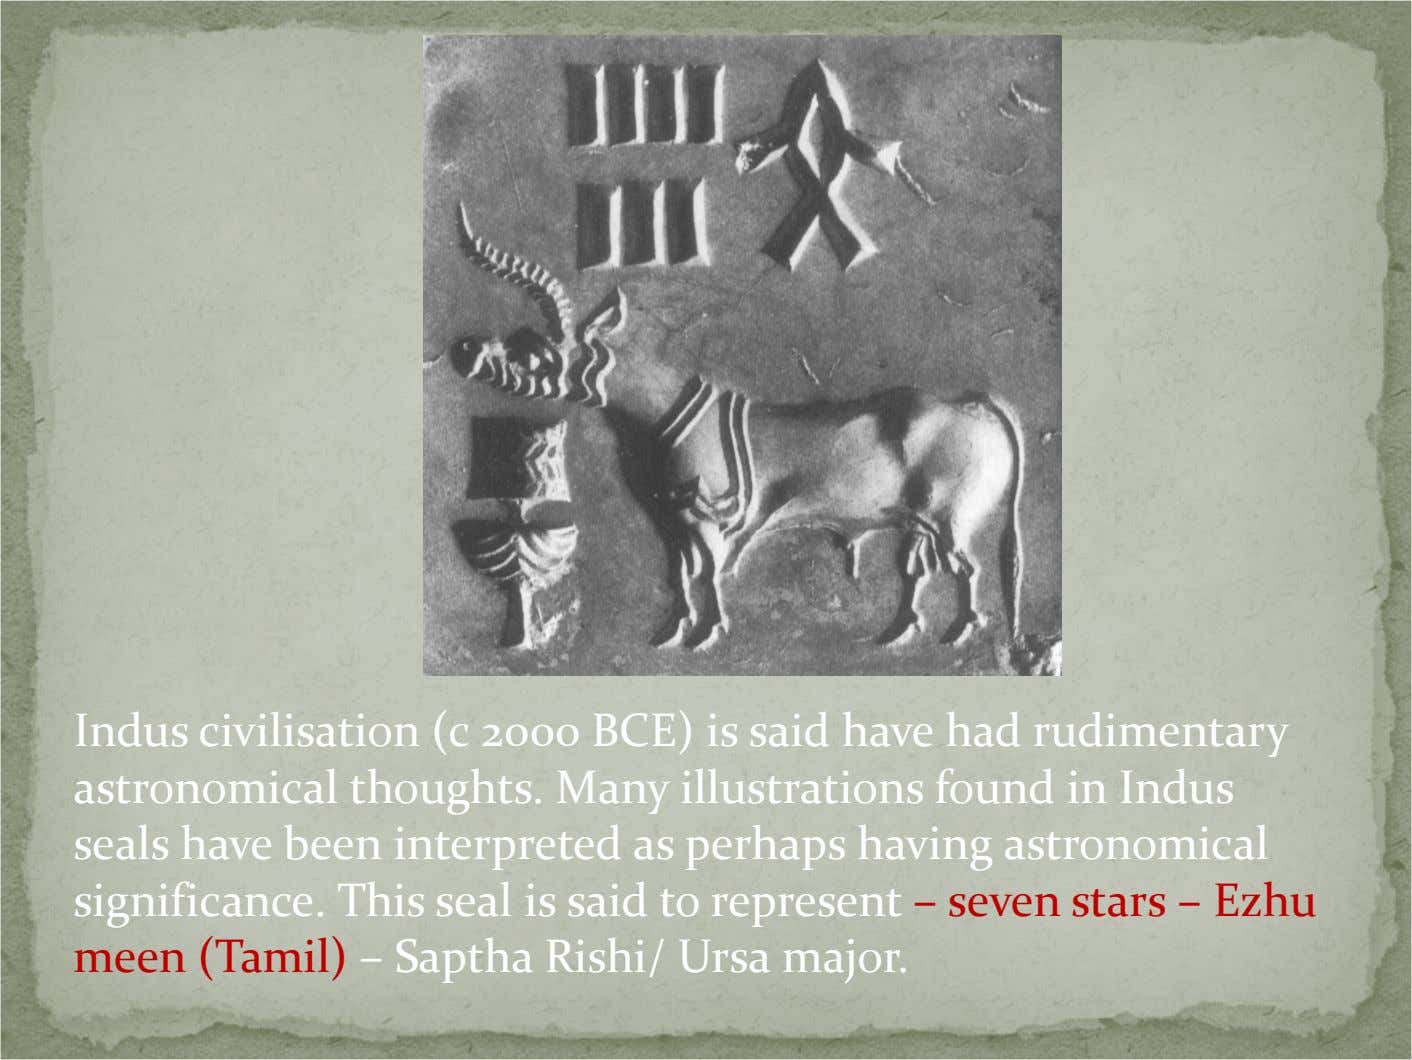 Indus civilisation (c 2000 BCE) is said have had rudimentary astronomical thoughts. Many illustrations found